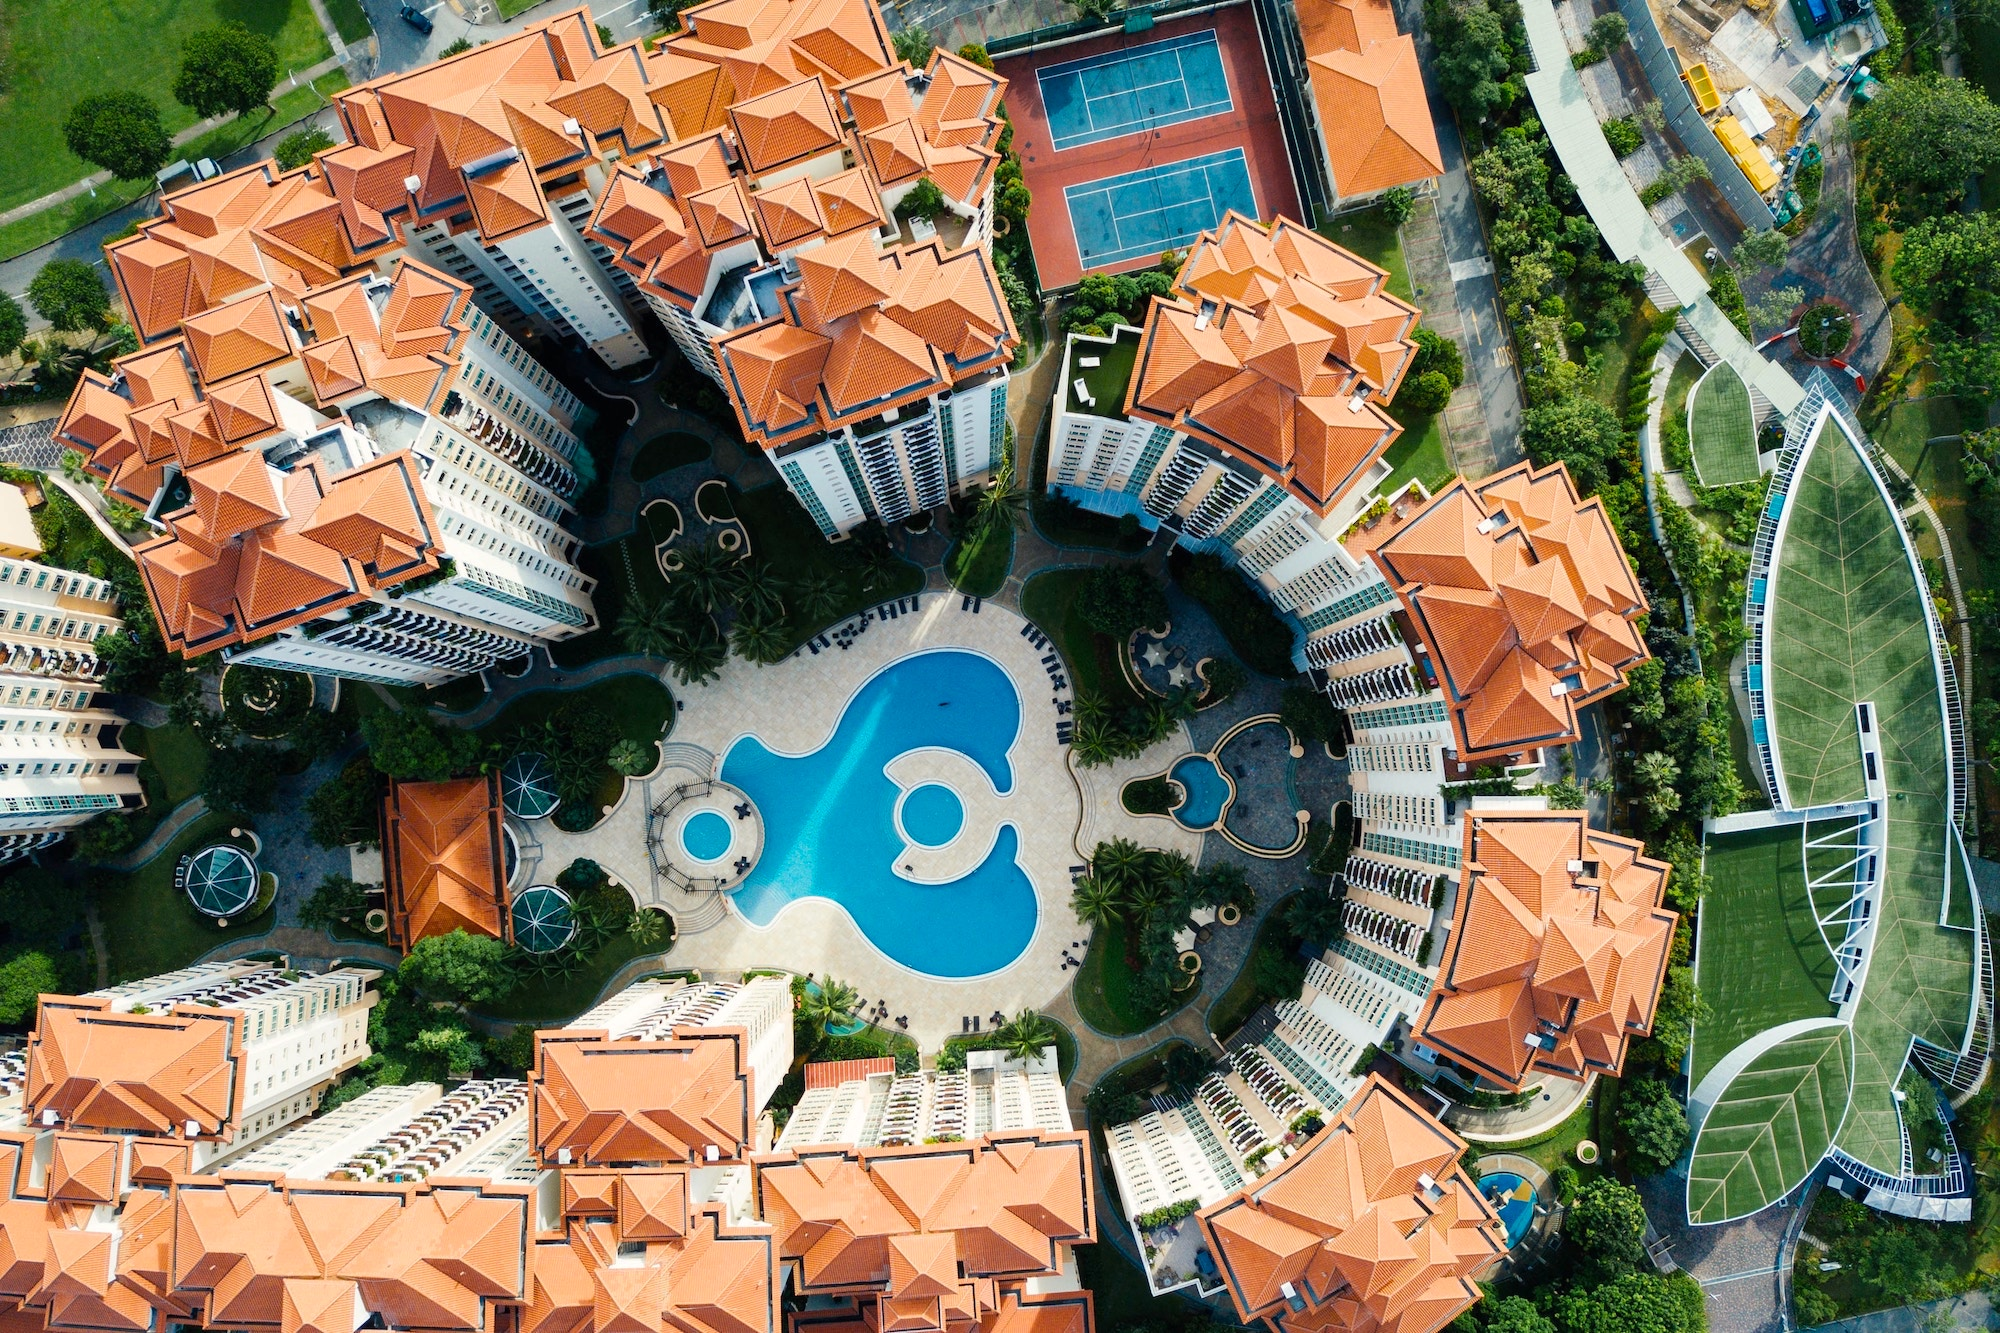 Singapore Condo from above